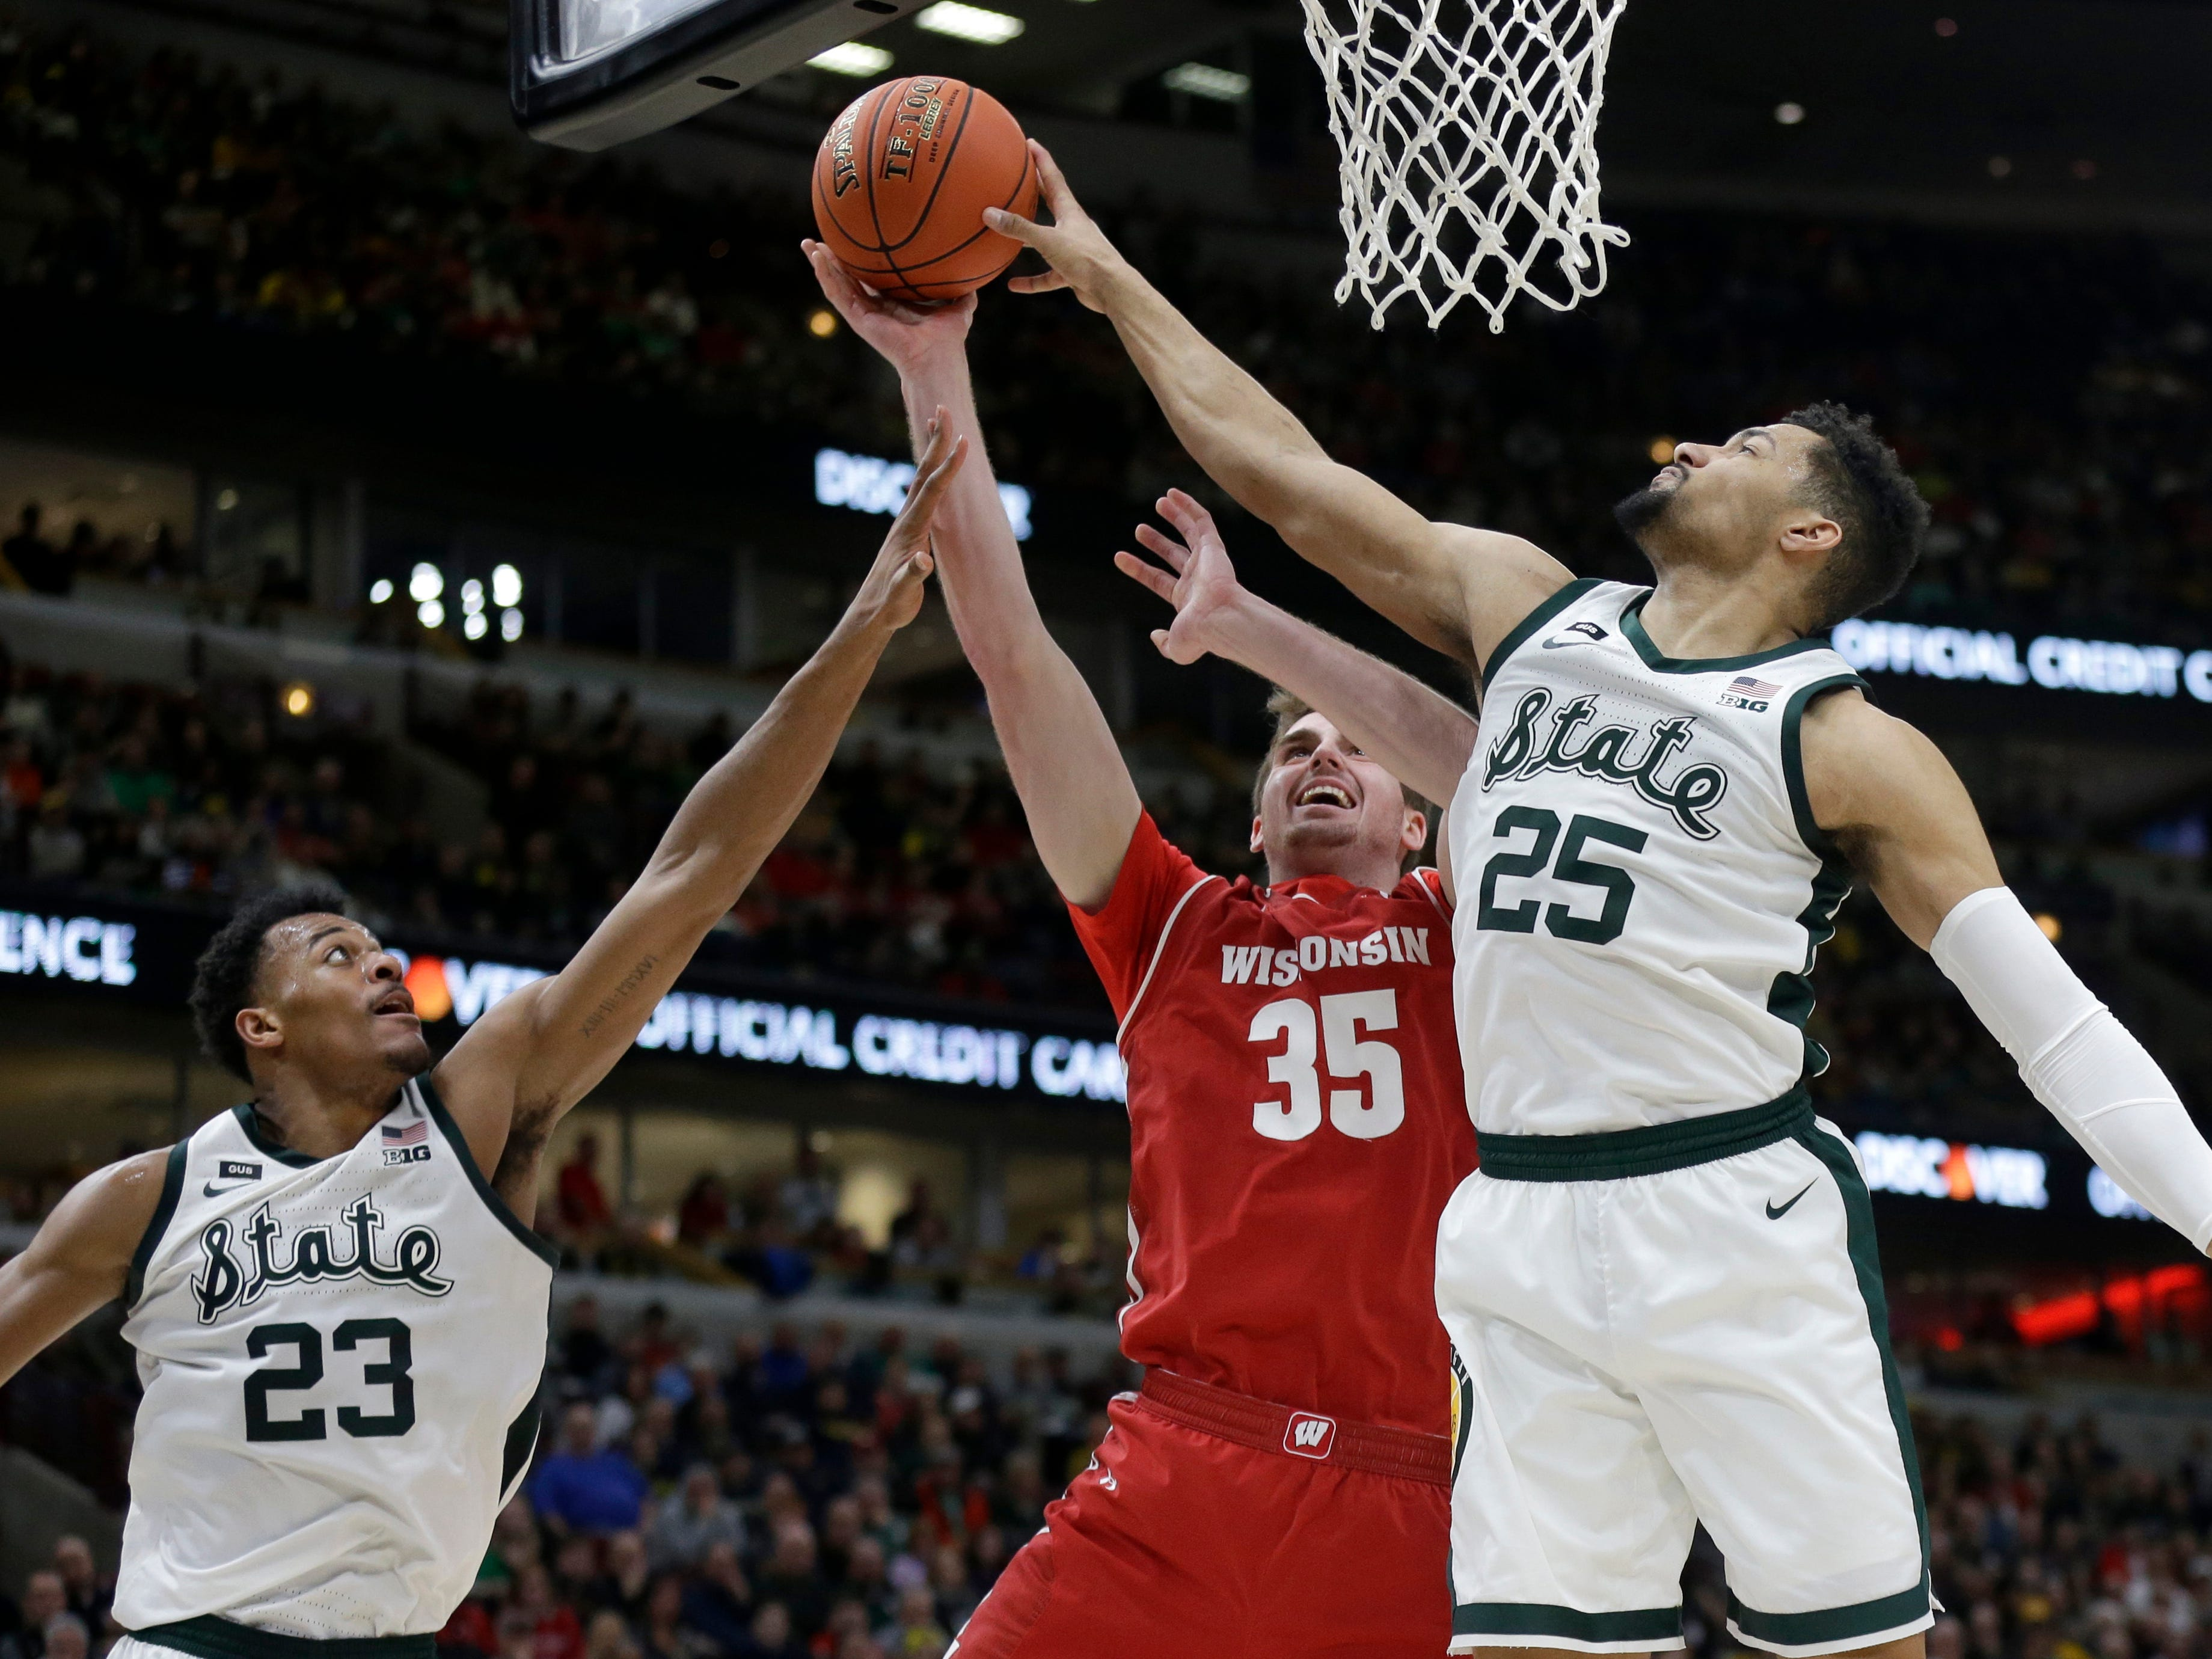 Michigan State's Kenny Goins blocks a shot by Wisconsin's Nate Reuvers during the second half.